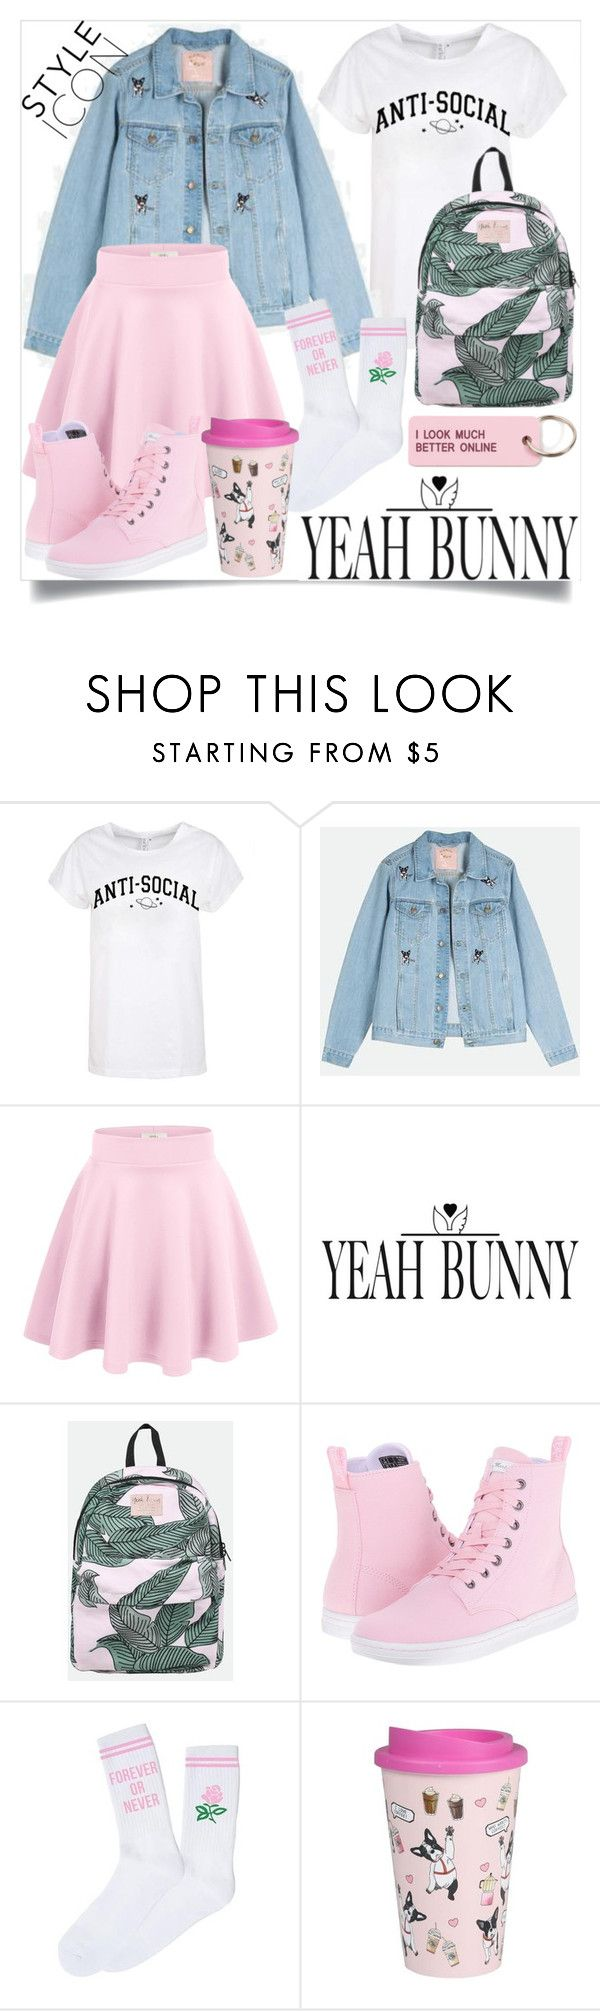 """""""YEAHBUNNY CONTEST"""" by agathaputri ❤ liked on Polyvore featuring Yeah Bunny, Dr. Martens and Various Projects"""